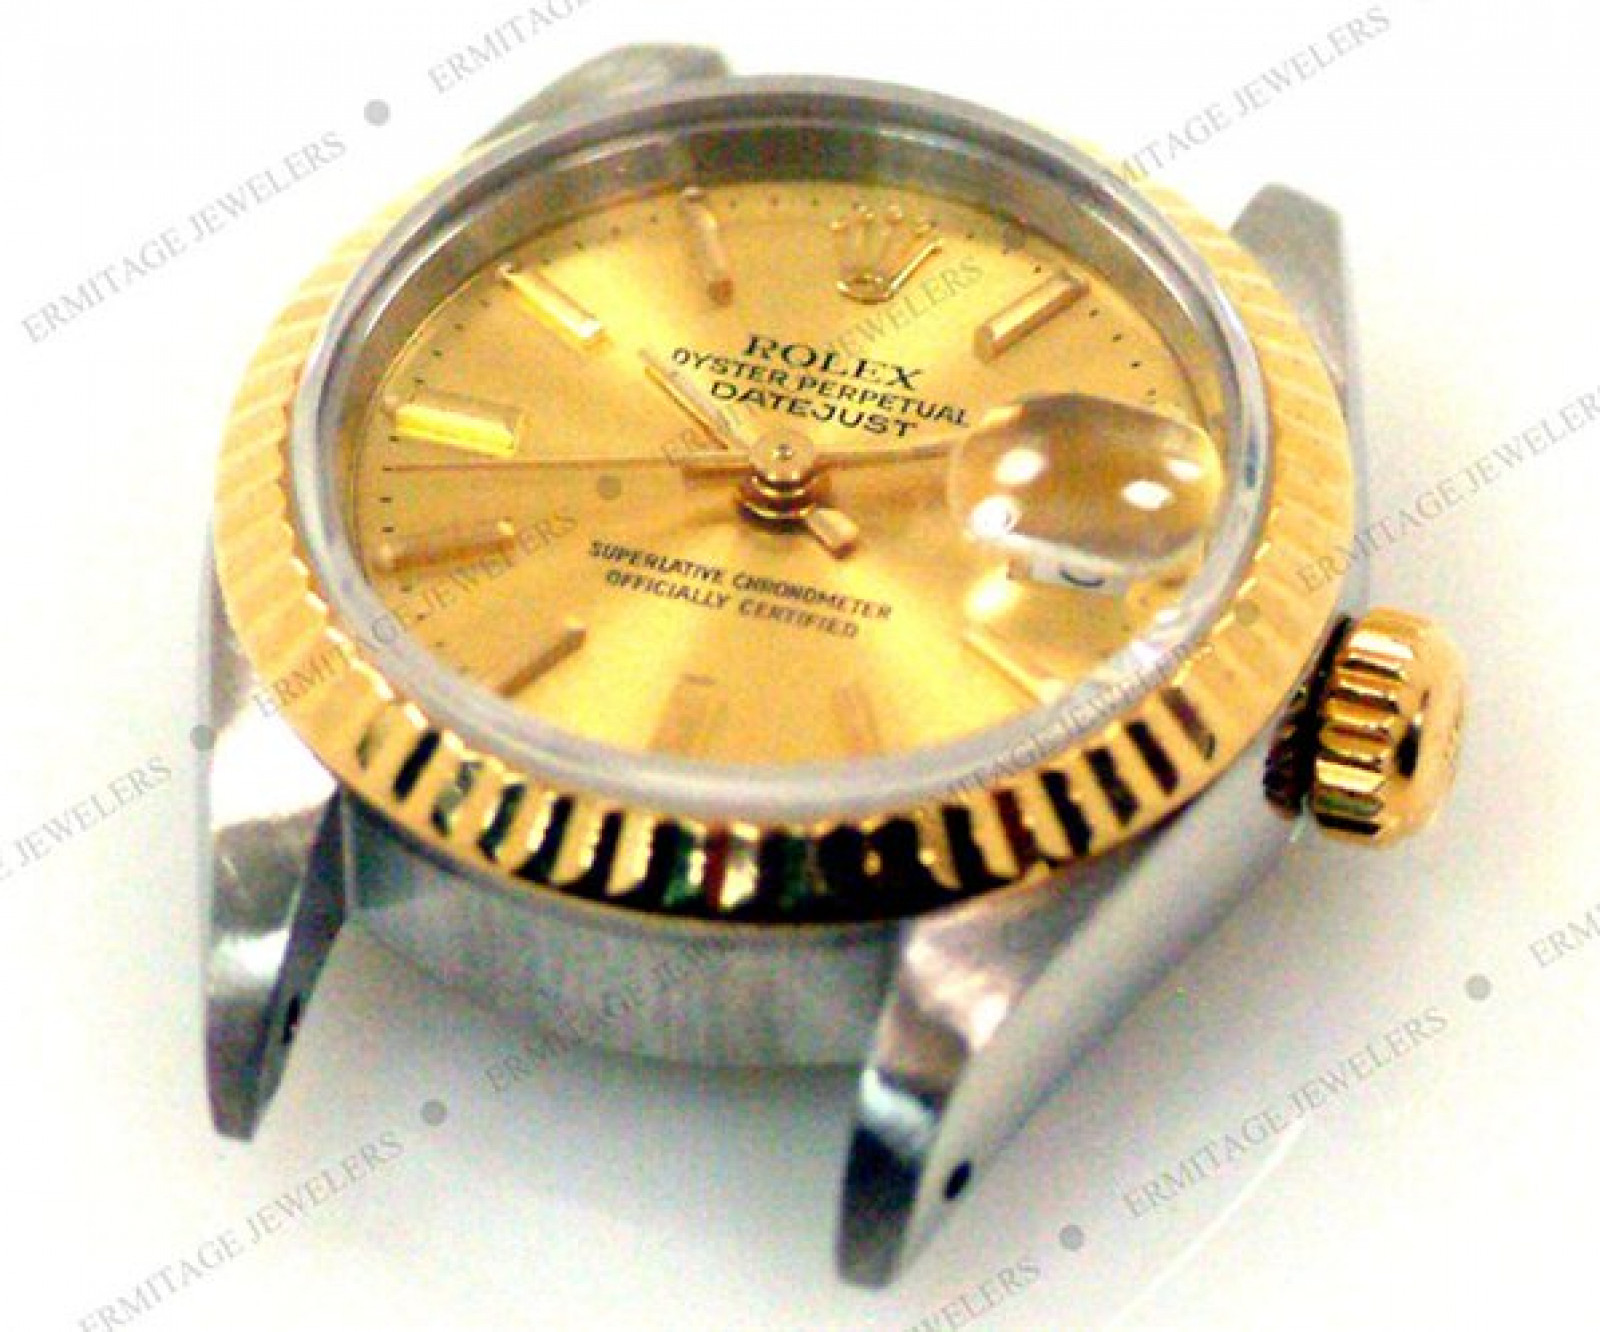 Pre-Owned Gold & Steel Rolex Datejust 69173 Year 1995